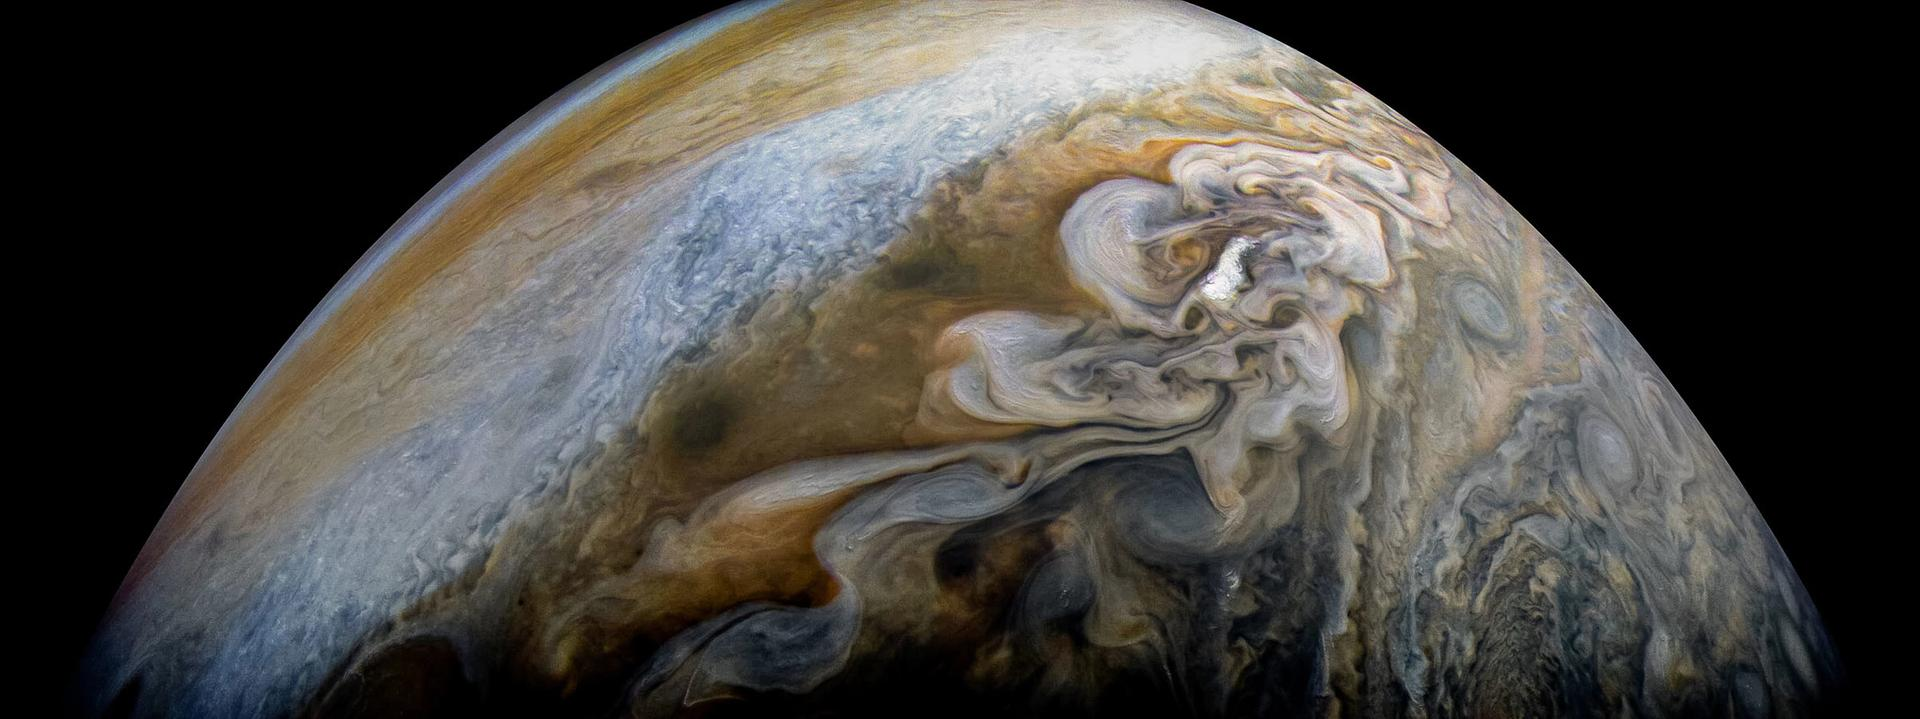 Juno has given scientists a far greater understanding of Jupiter's complex atmosphere.